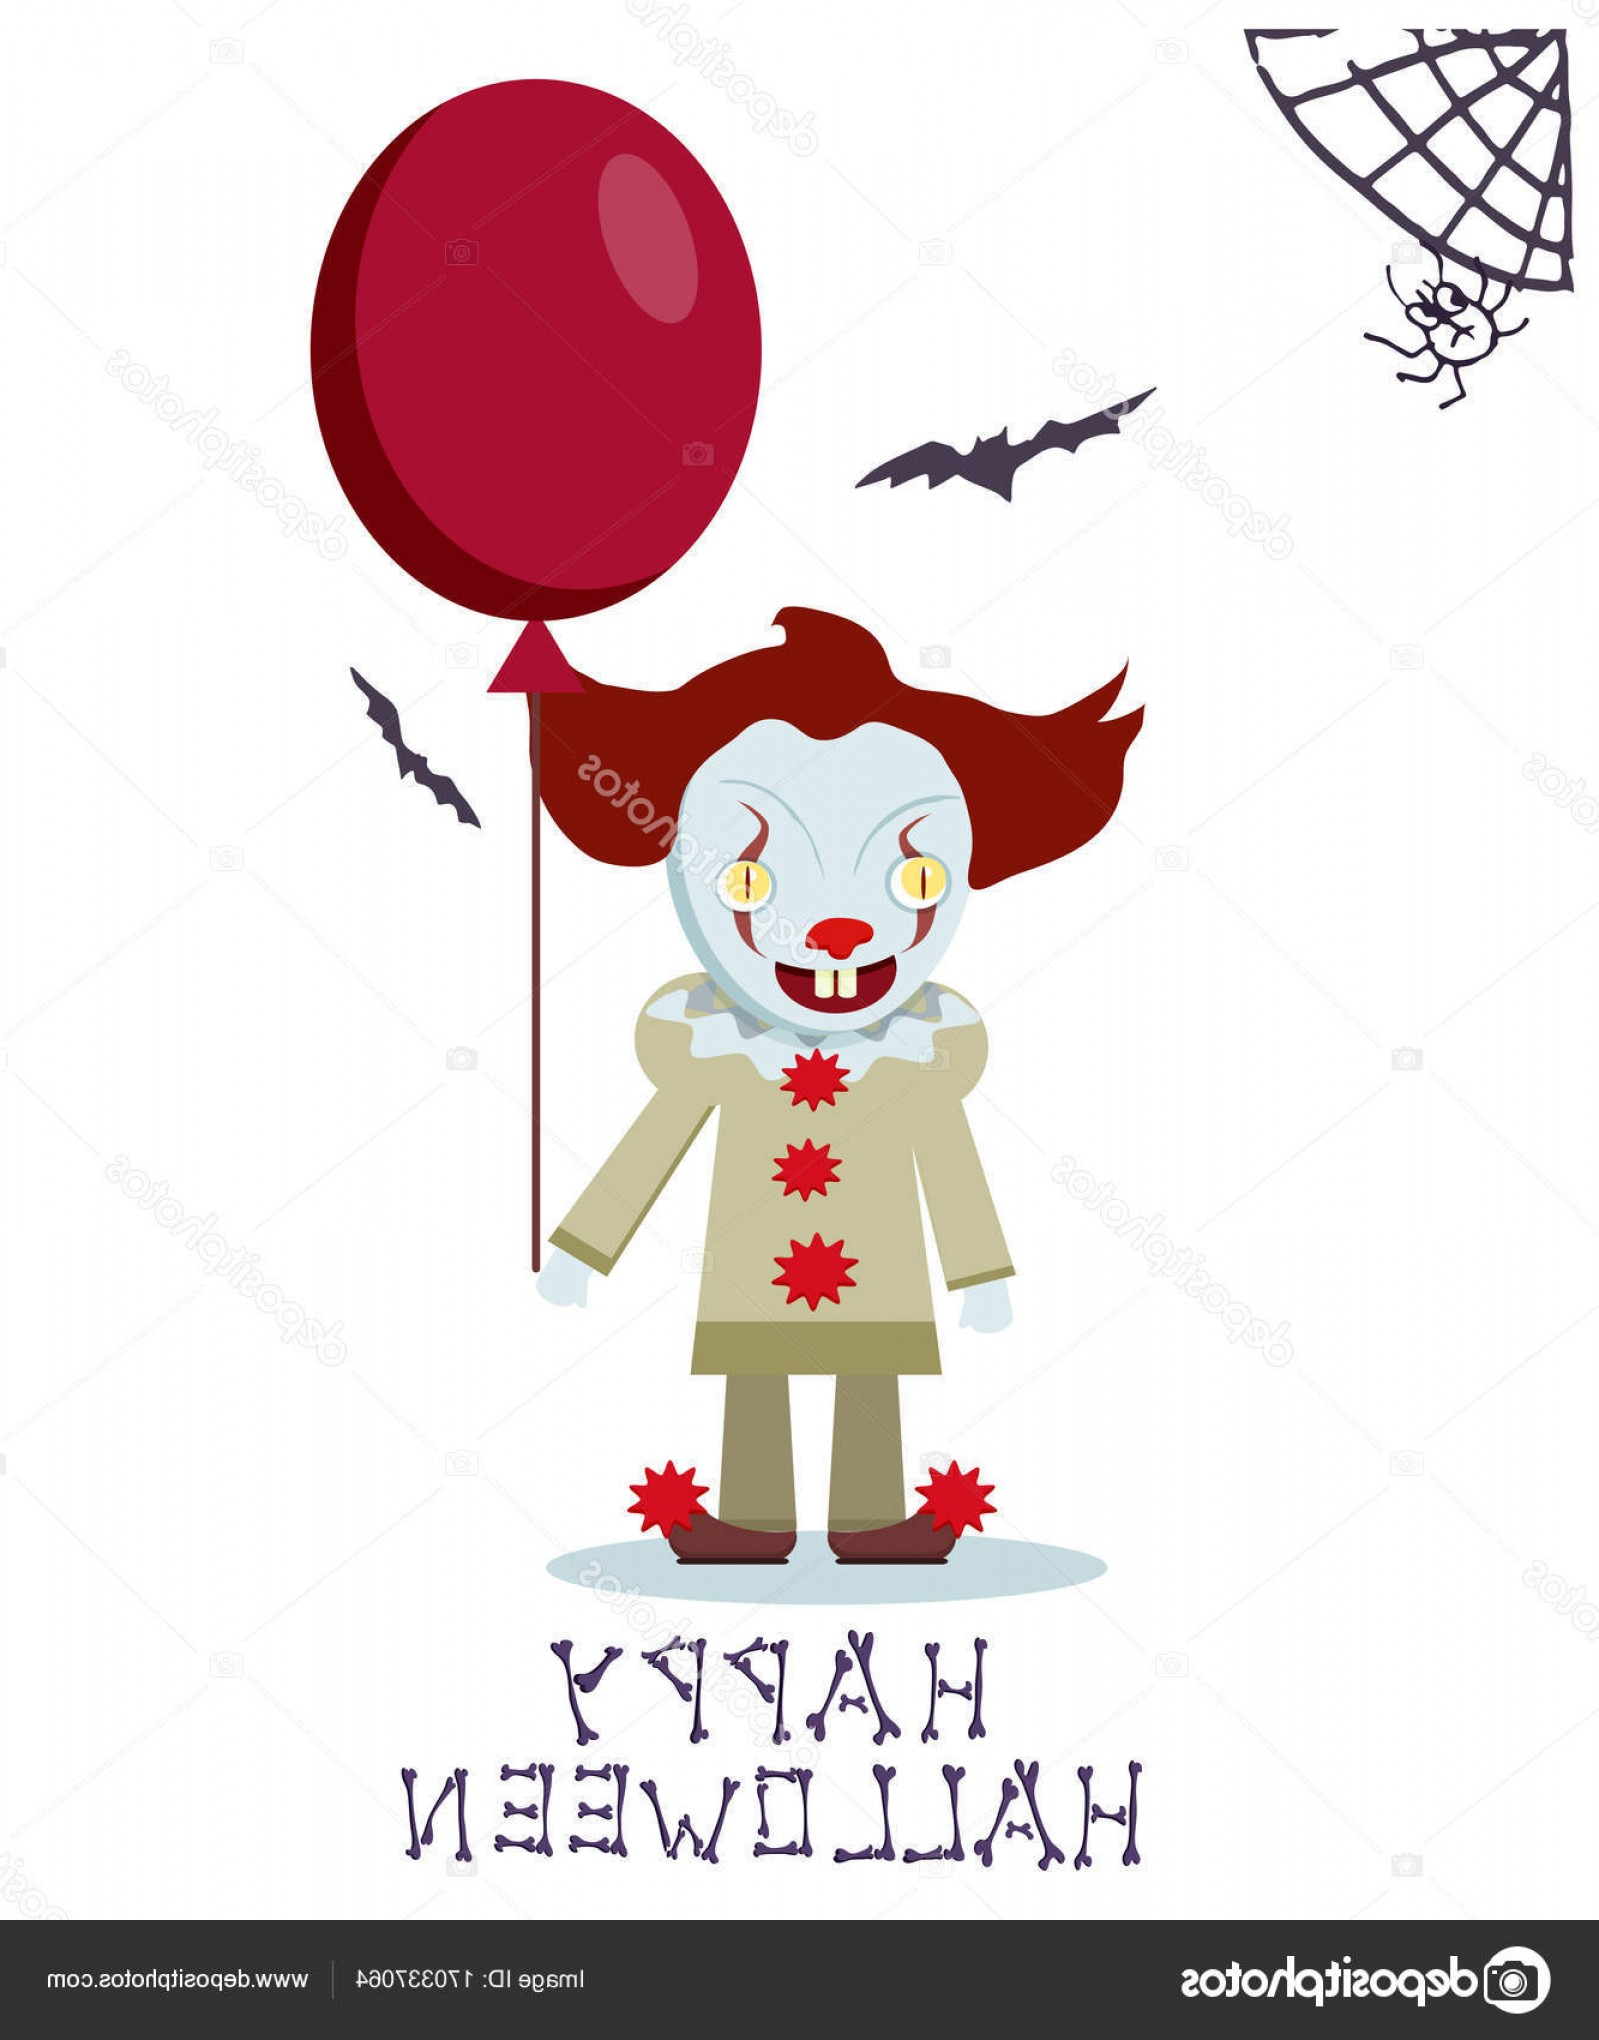 Pennywise Clown Vector: Stock Illustration Angry Evil Clown With Red